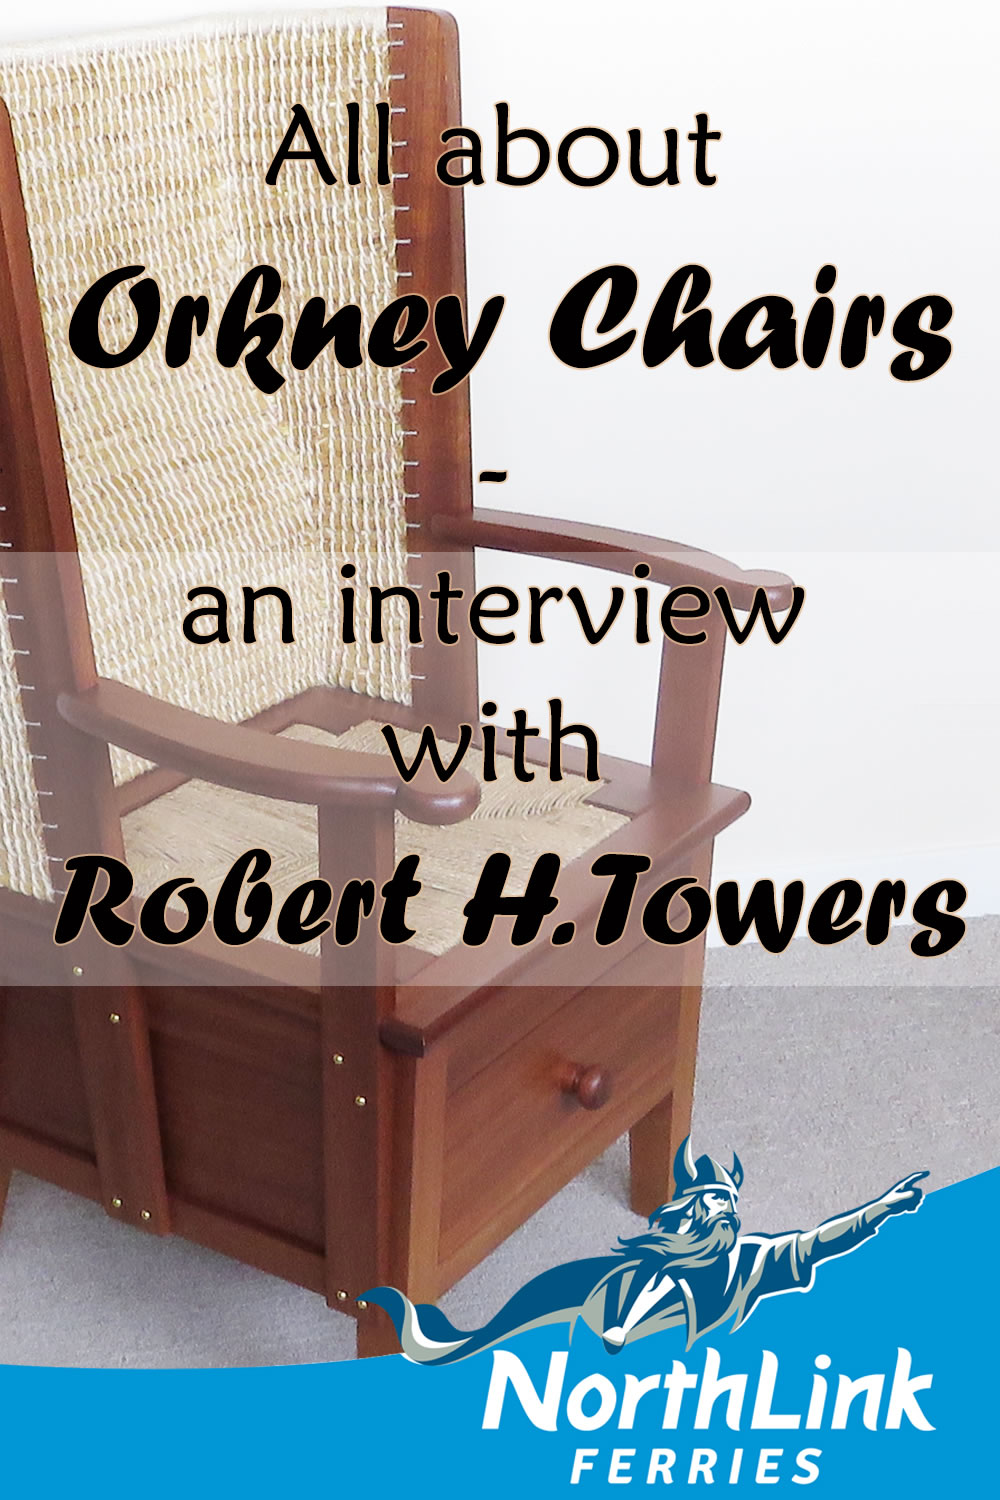 All about Orkney Chairs - an interview with Robert H. Towers